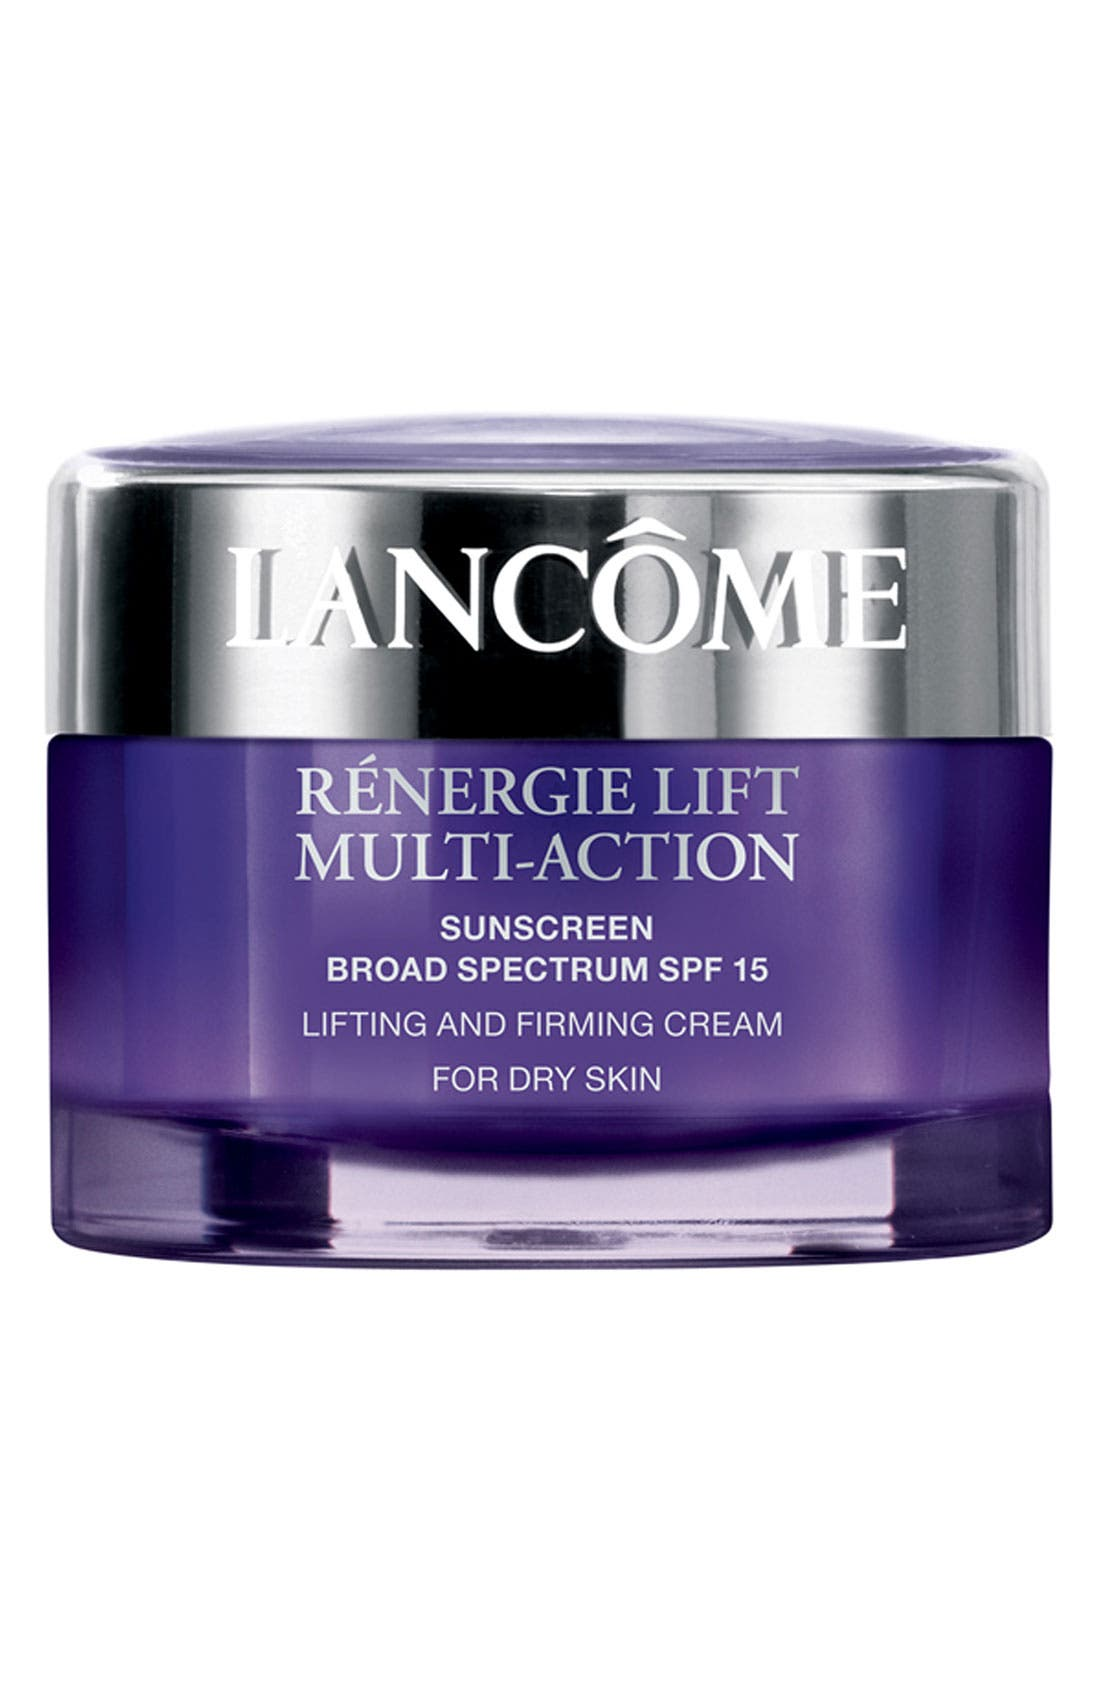 Lancôme Rénergie Lift Multi Action Moisturizer Cream SPF 15 for Dry Skin